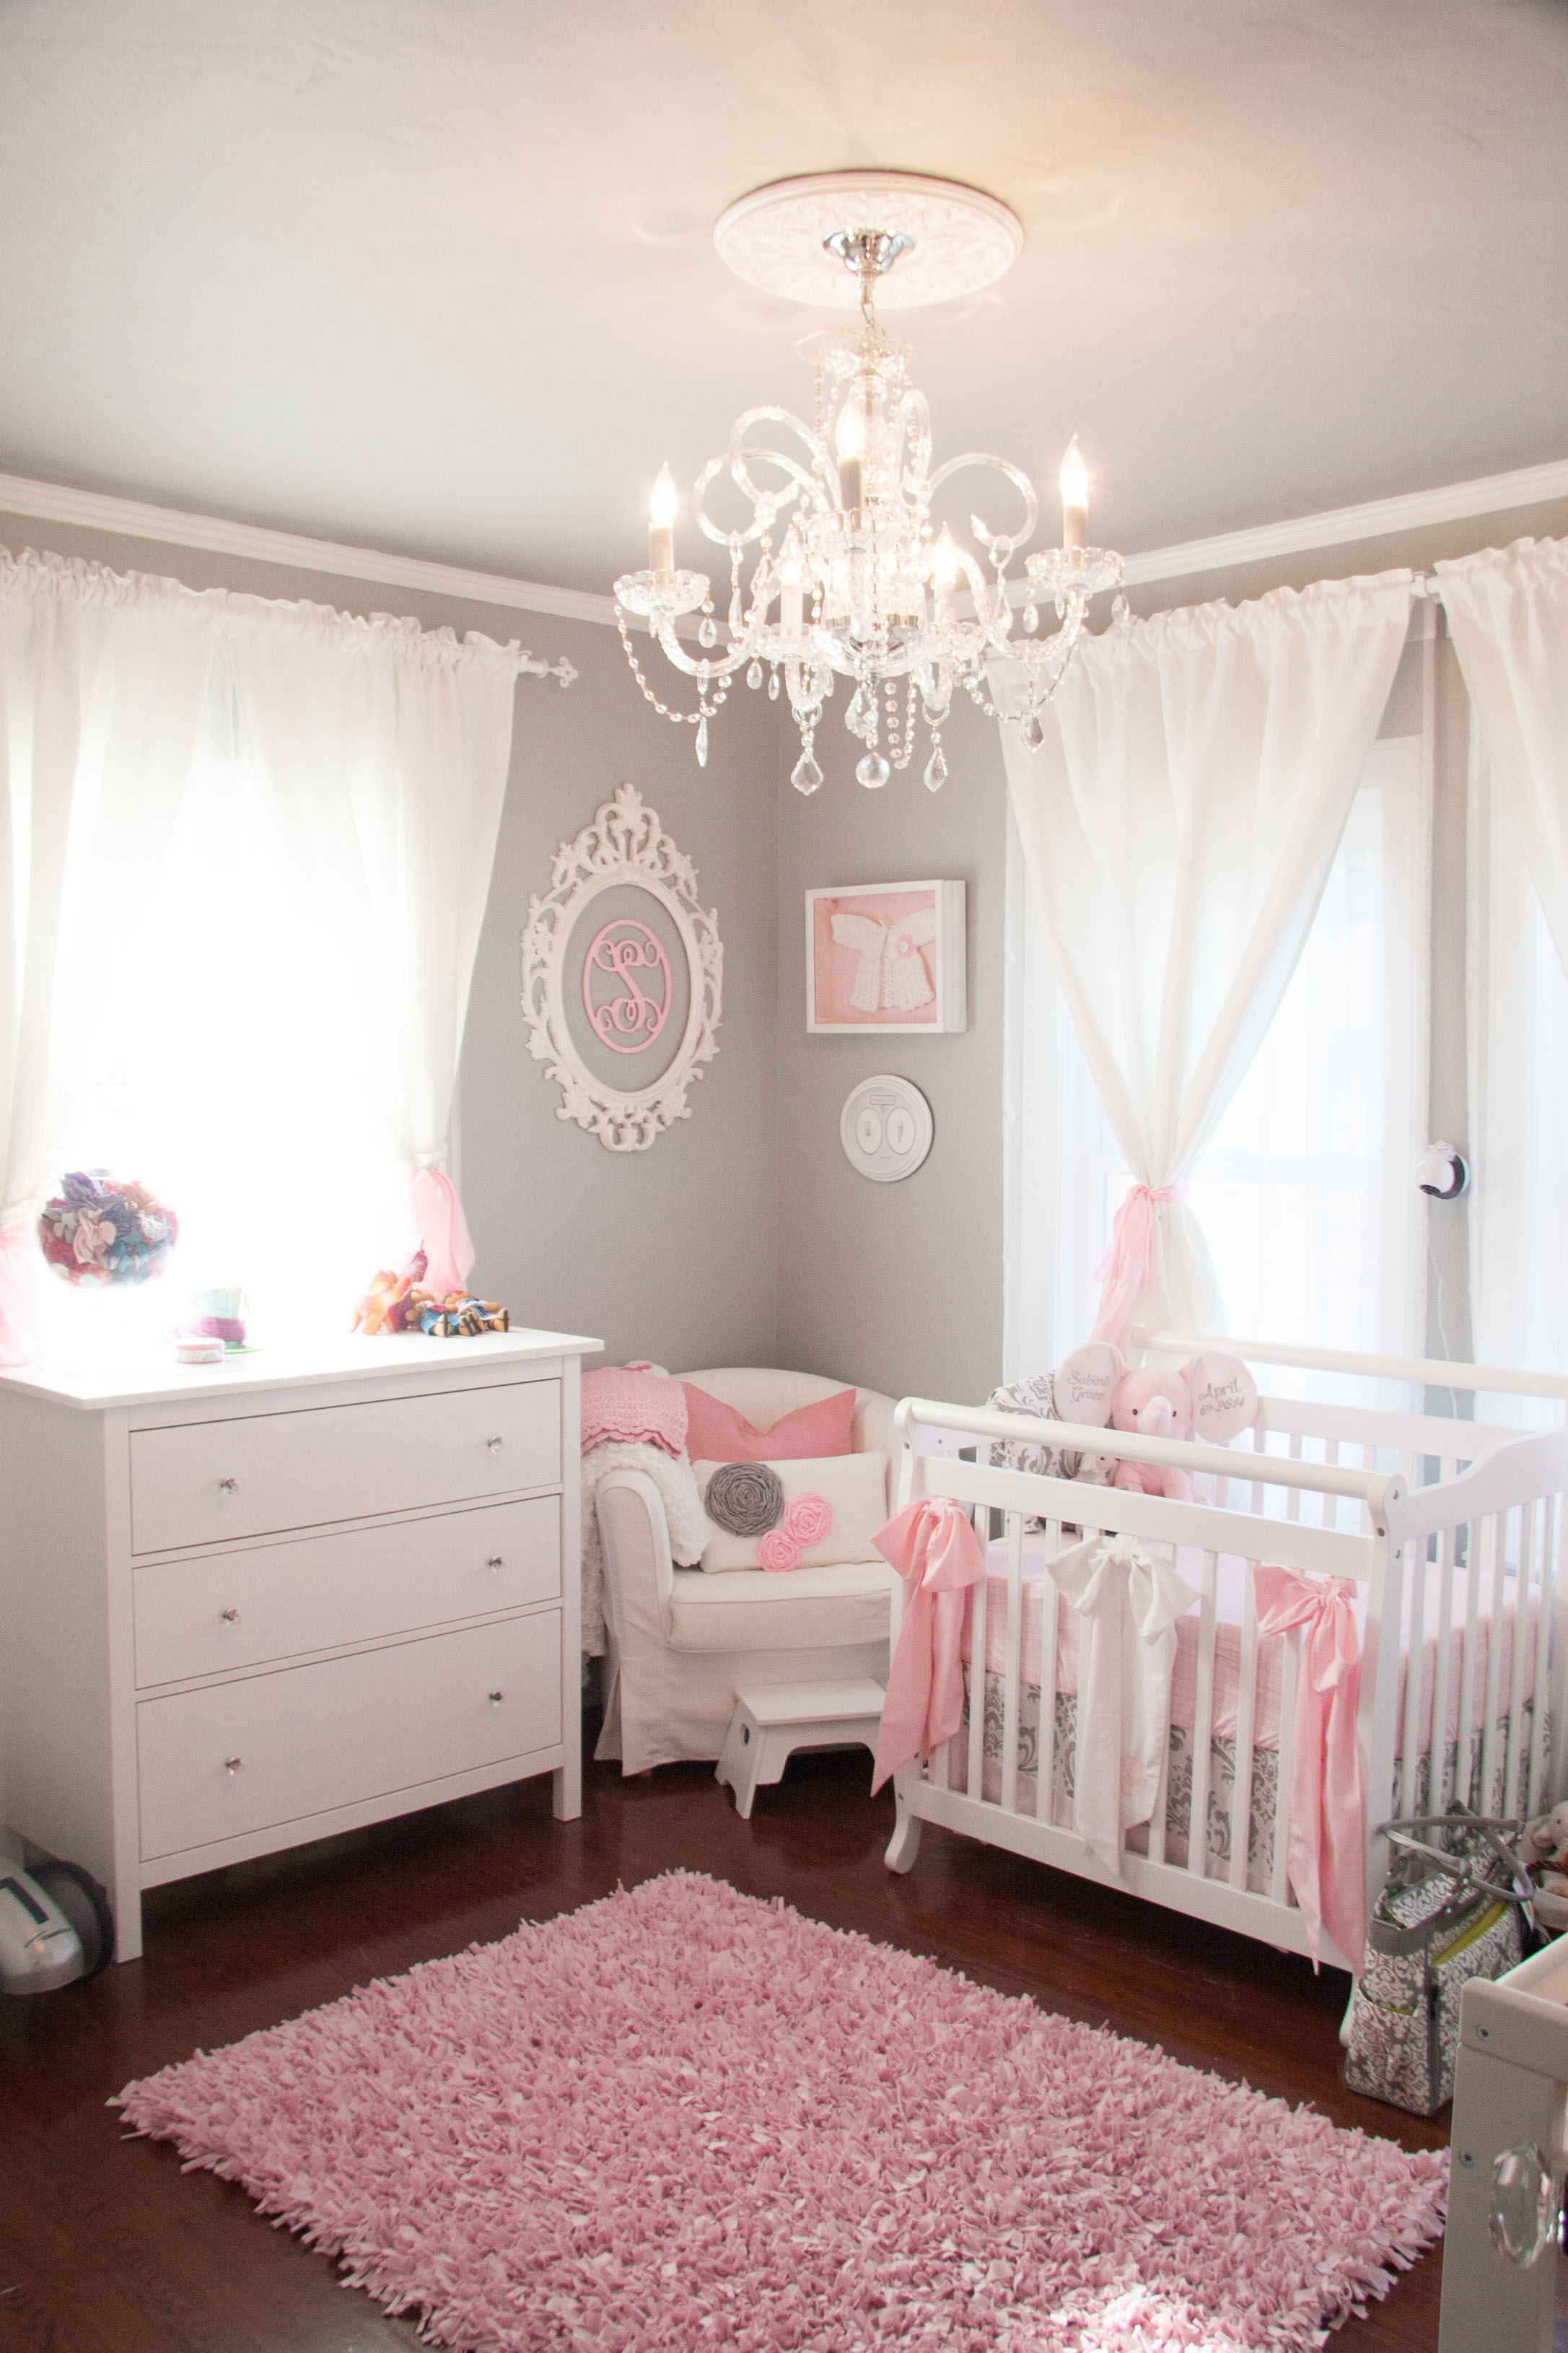 Decorating Ideas For Girls Bedroom. Decorating Ideas For Girls Bedroom